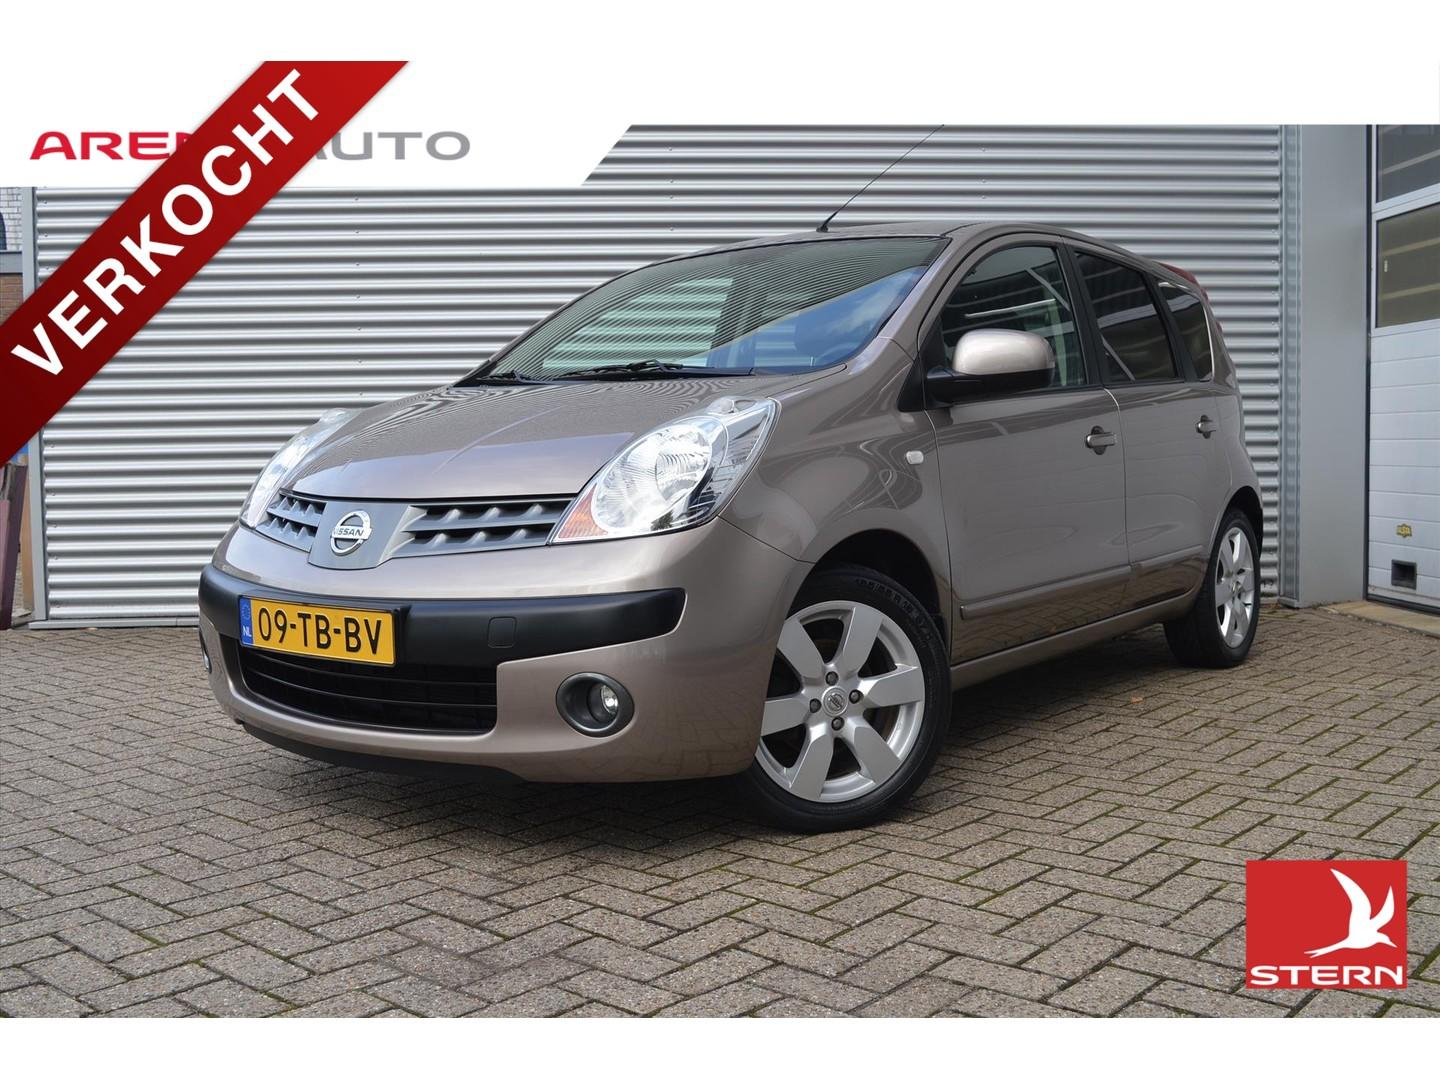 Nissan Note 1.4 88pk first note airco trekhaak